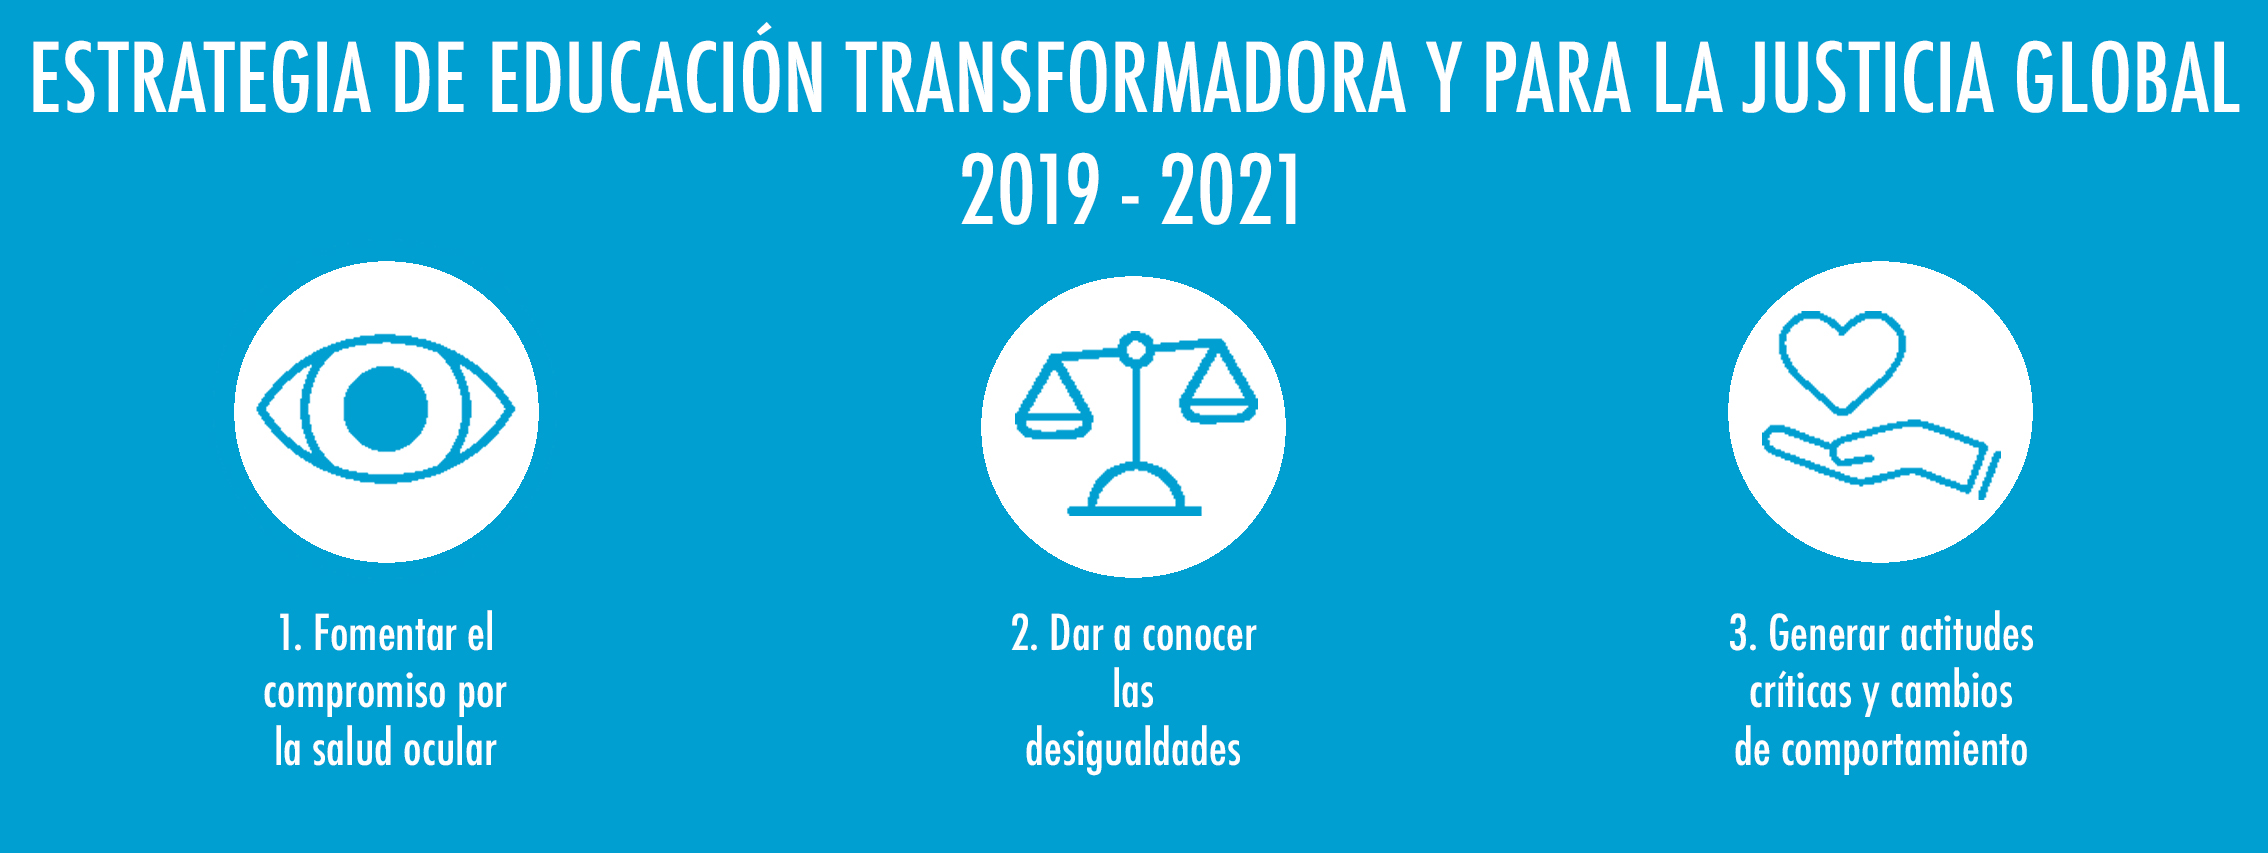 EstrEstrategia de educación transformadora y para la justicia global